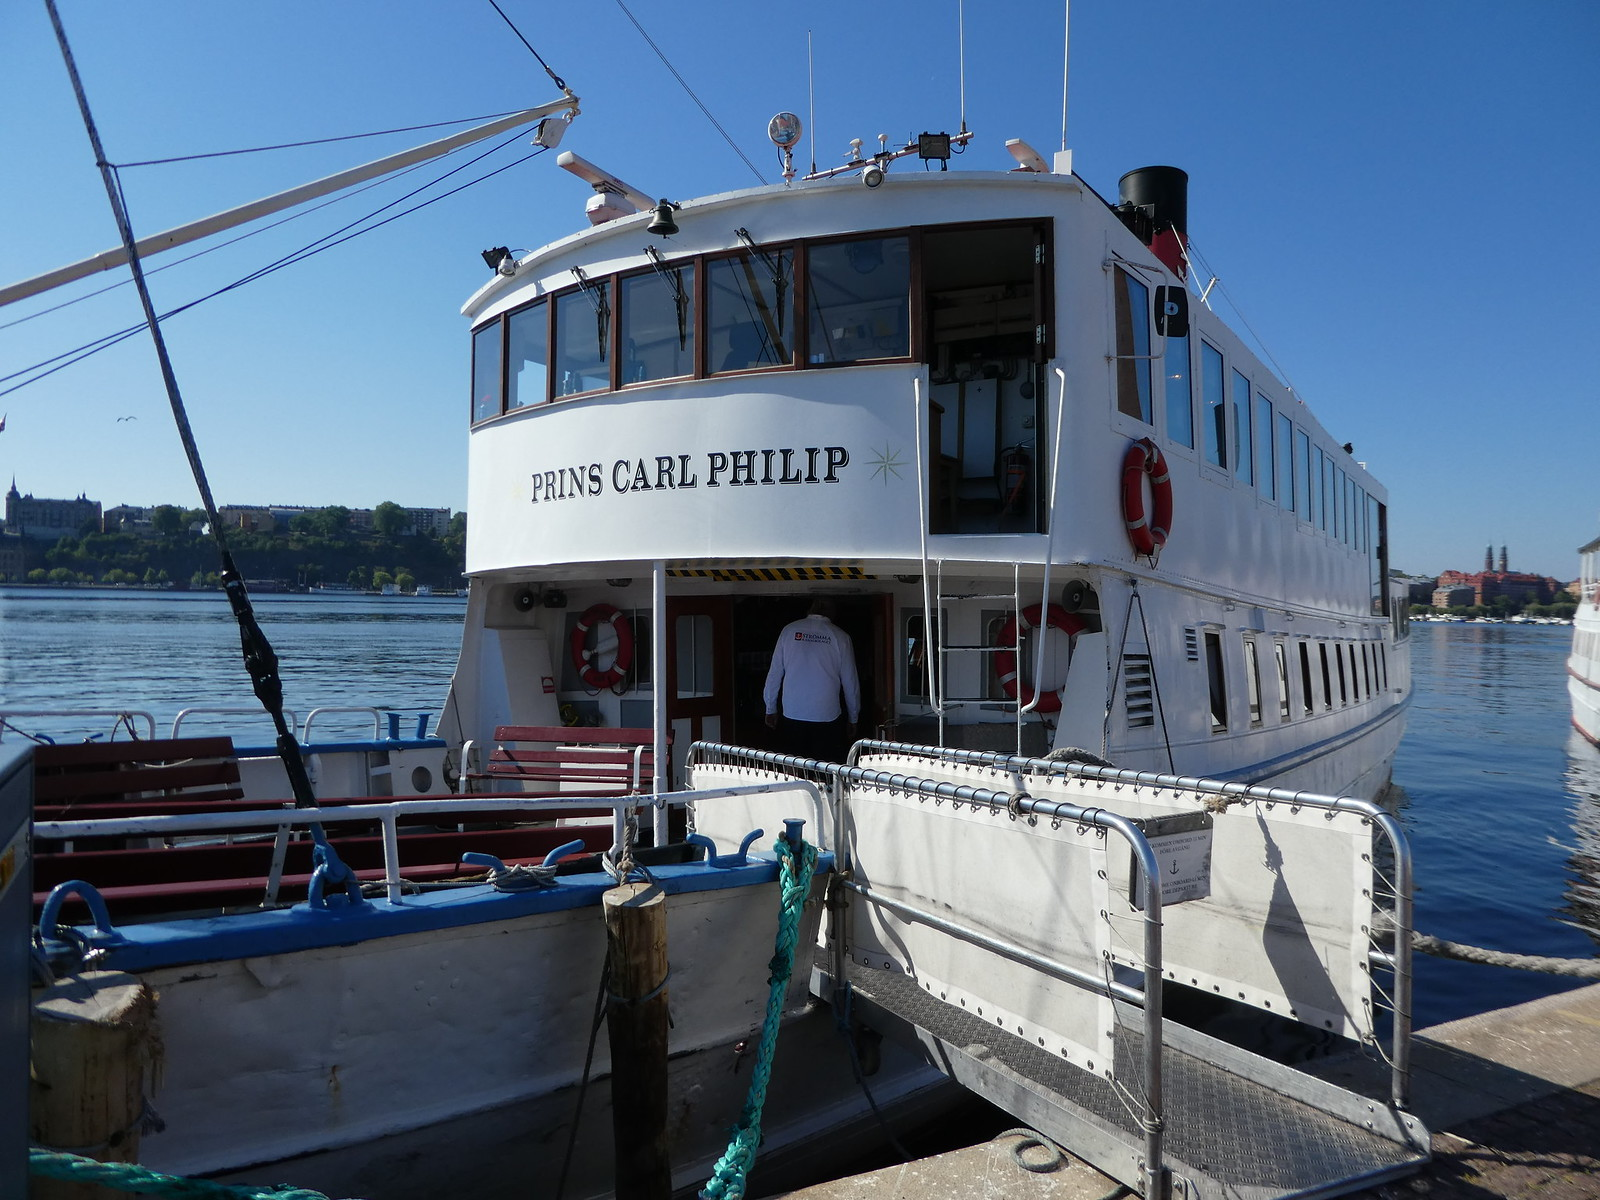 Prins Carl Philip our boat to Drottningholm Palace